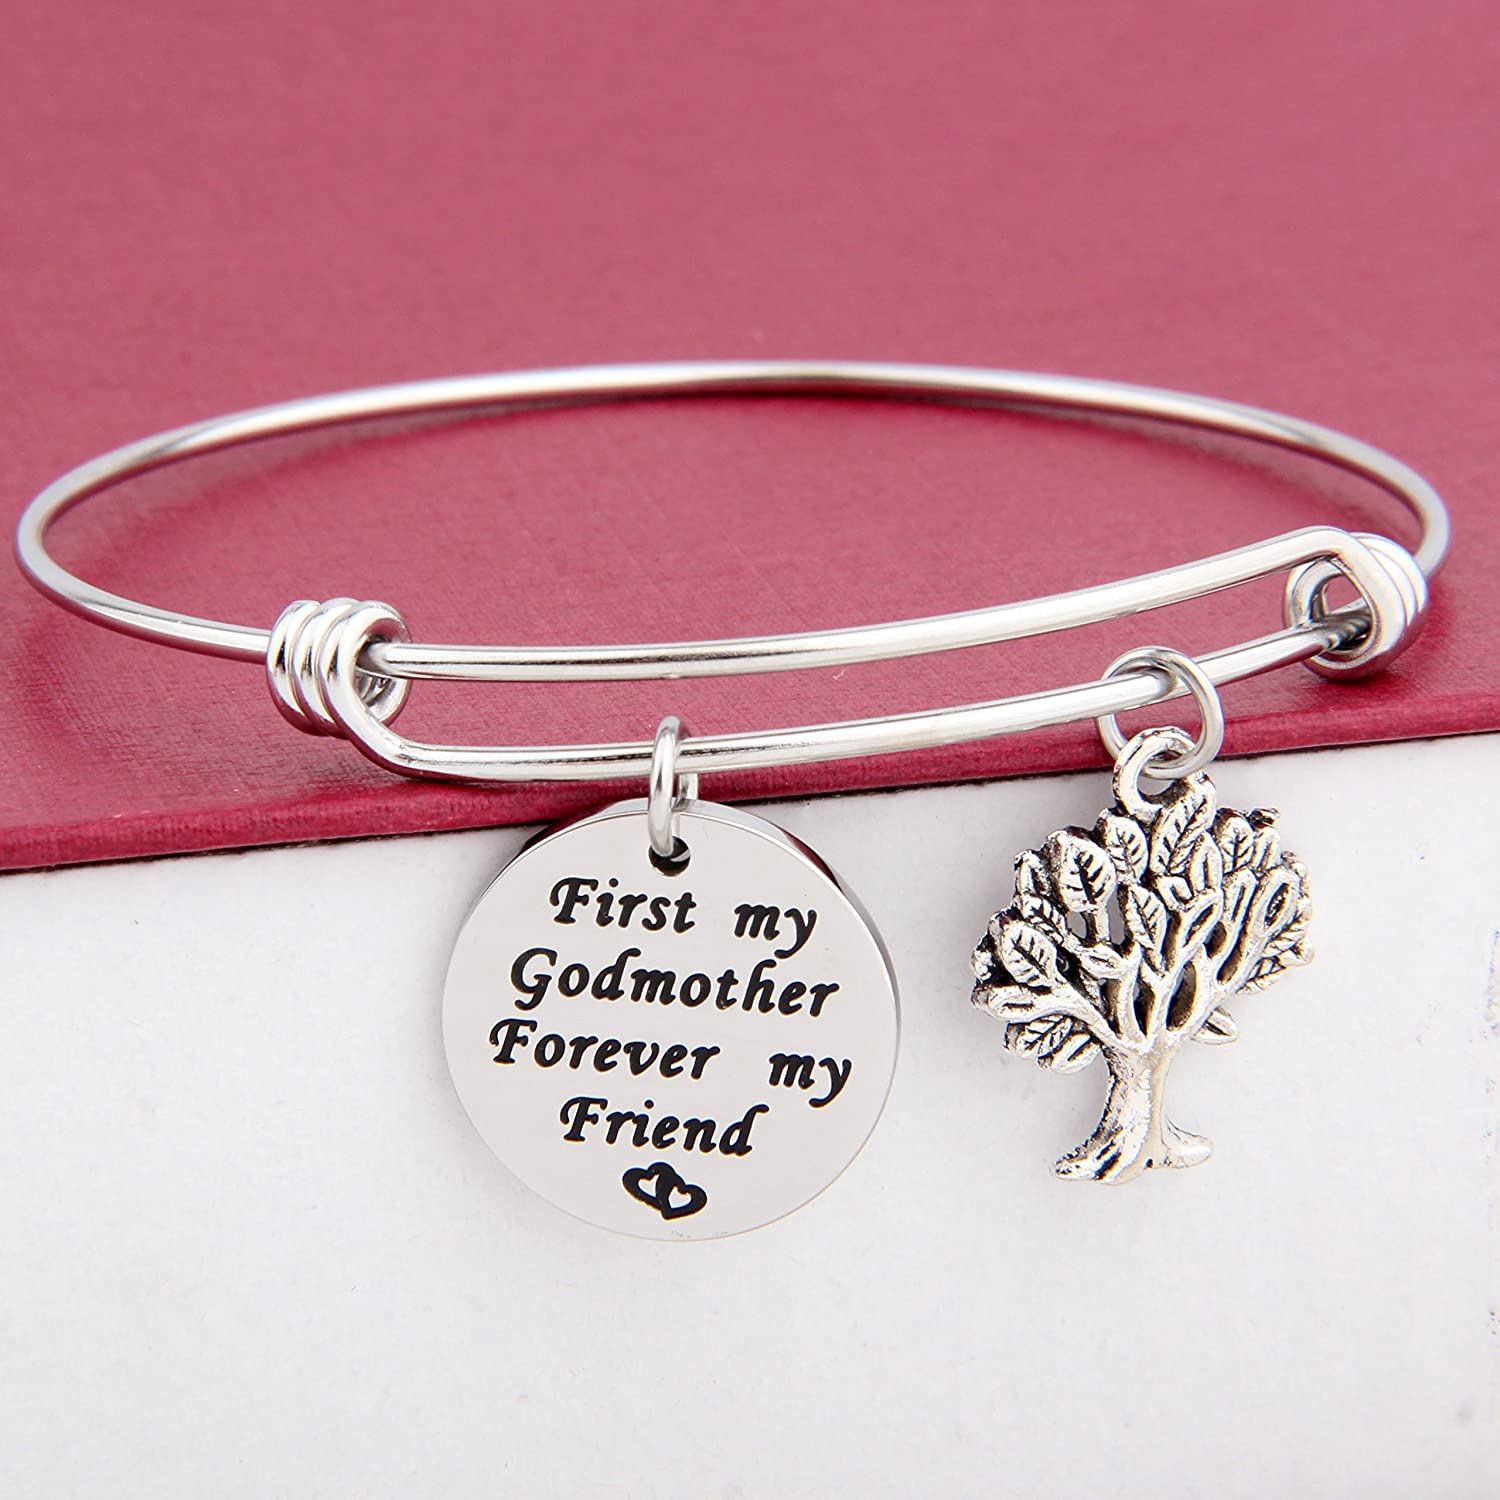 Amazon.com: SEIRAA First My Godmother Forever My Friend Bracelet ...